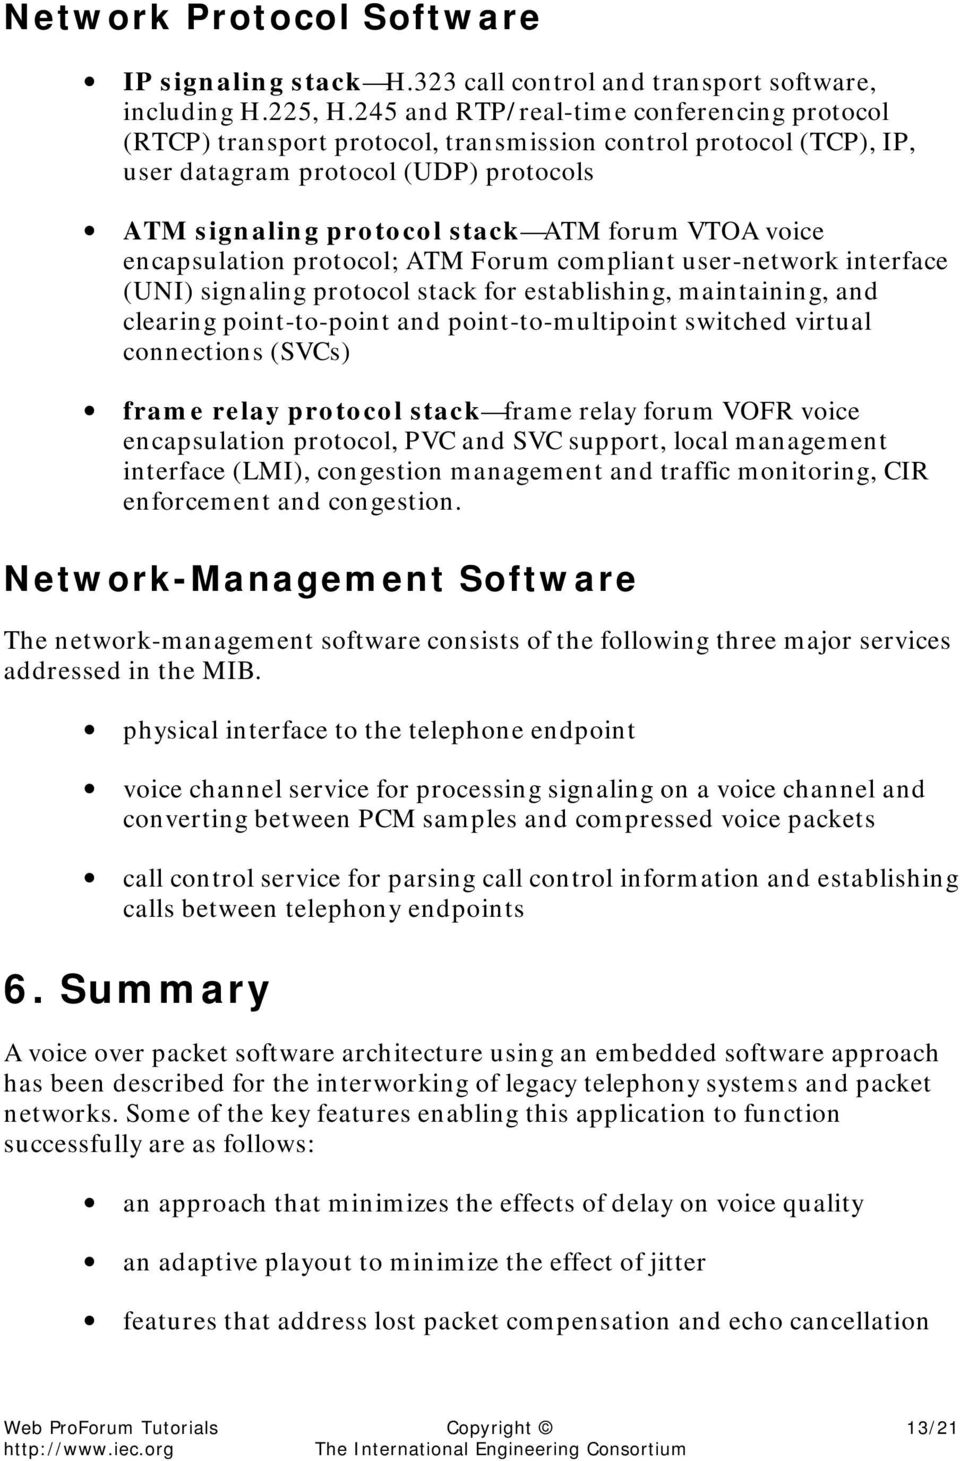 voice encapsulation protocol; ATM Forum compliant user-network interface (UNI) signaling protocol stack for establishing, maintaining, and clearing point-to-point and point-to-multipoint switched